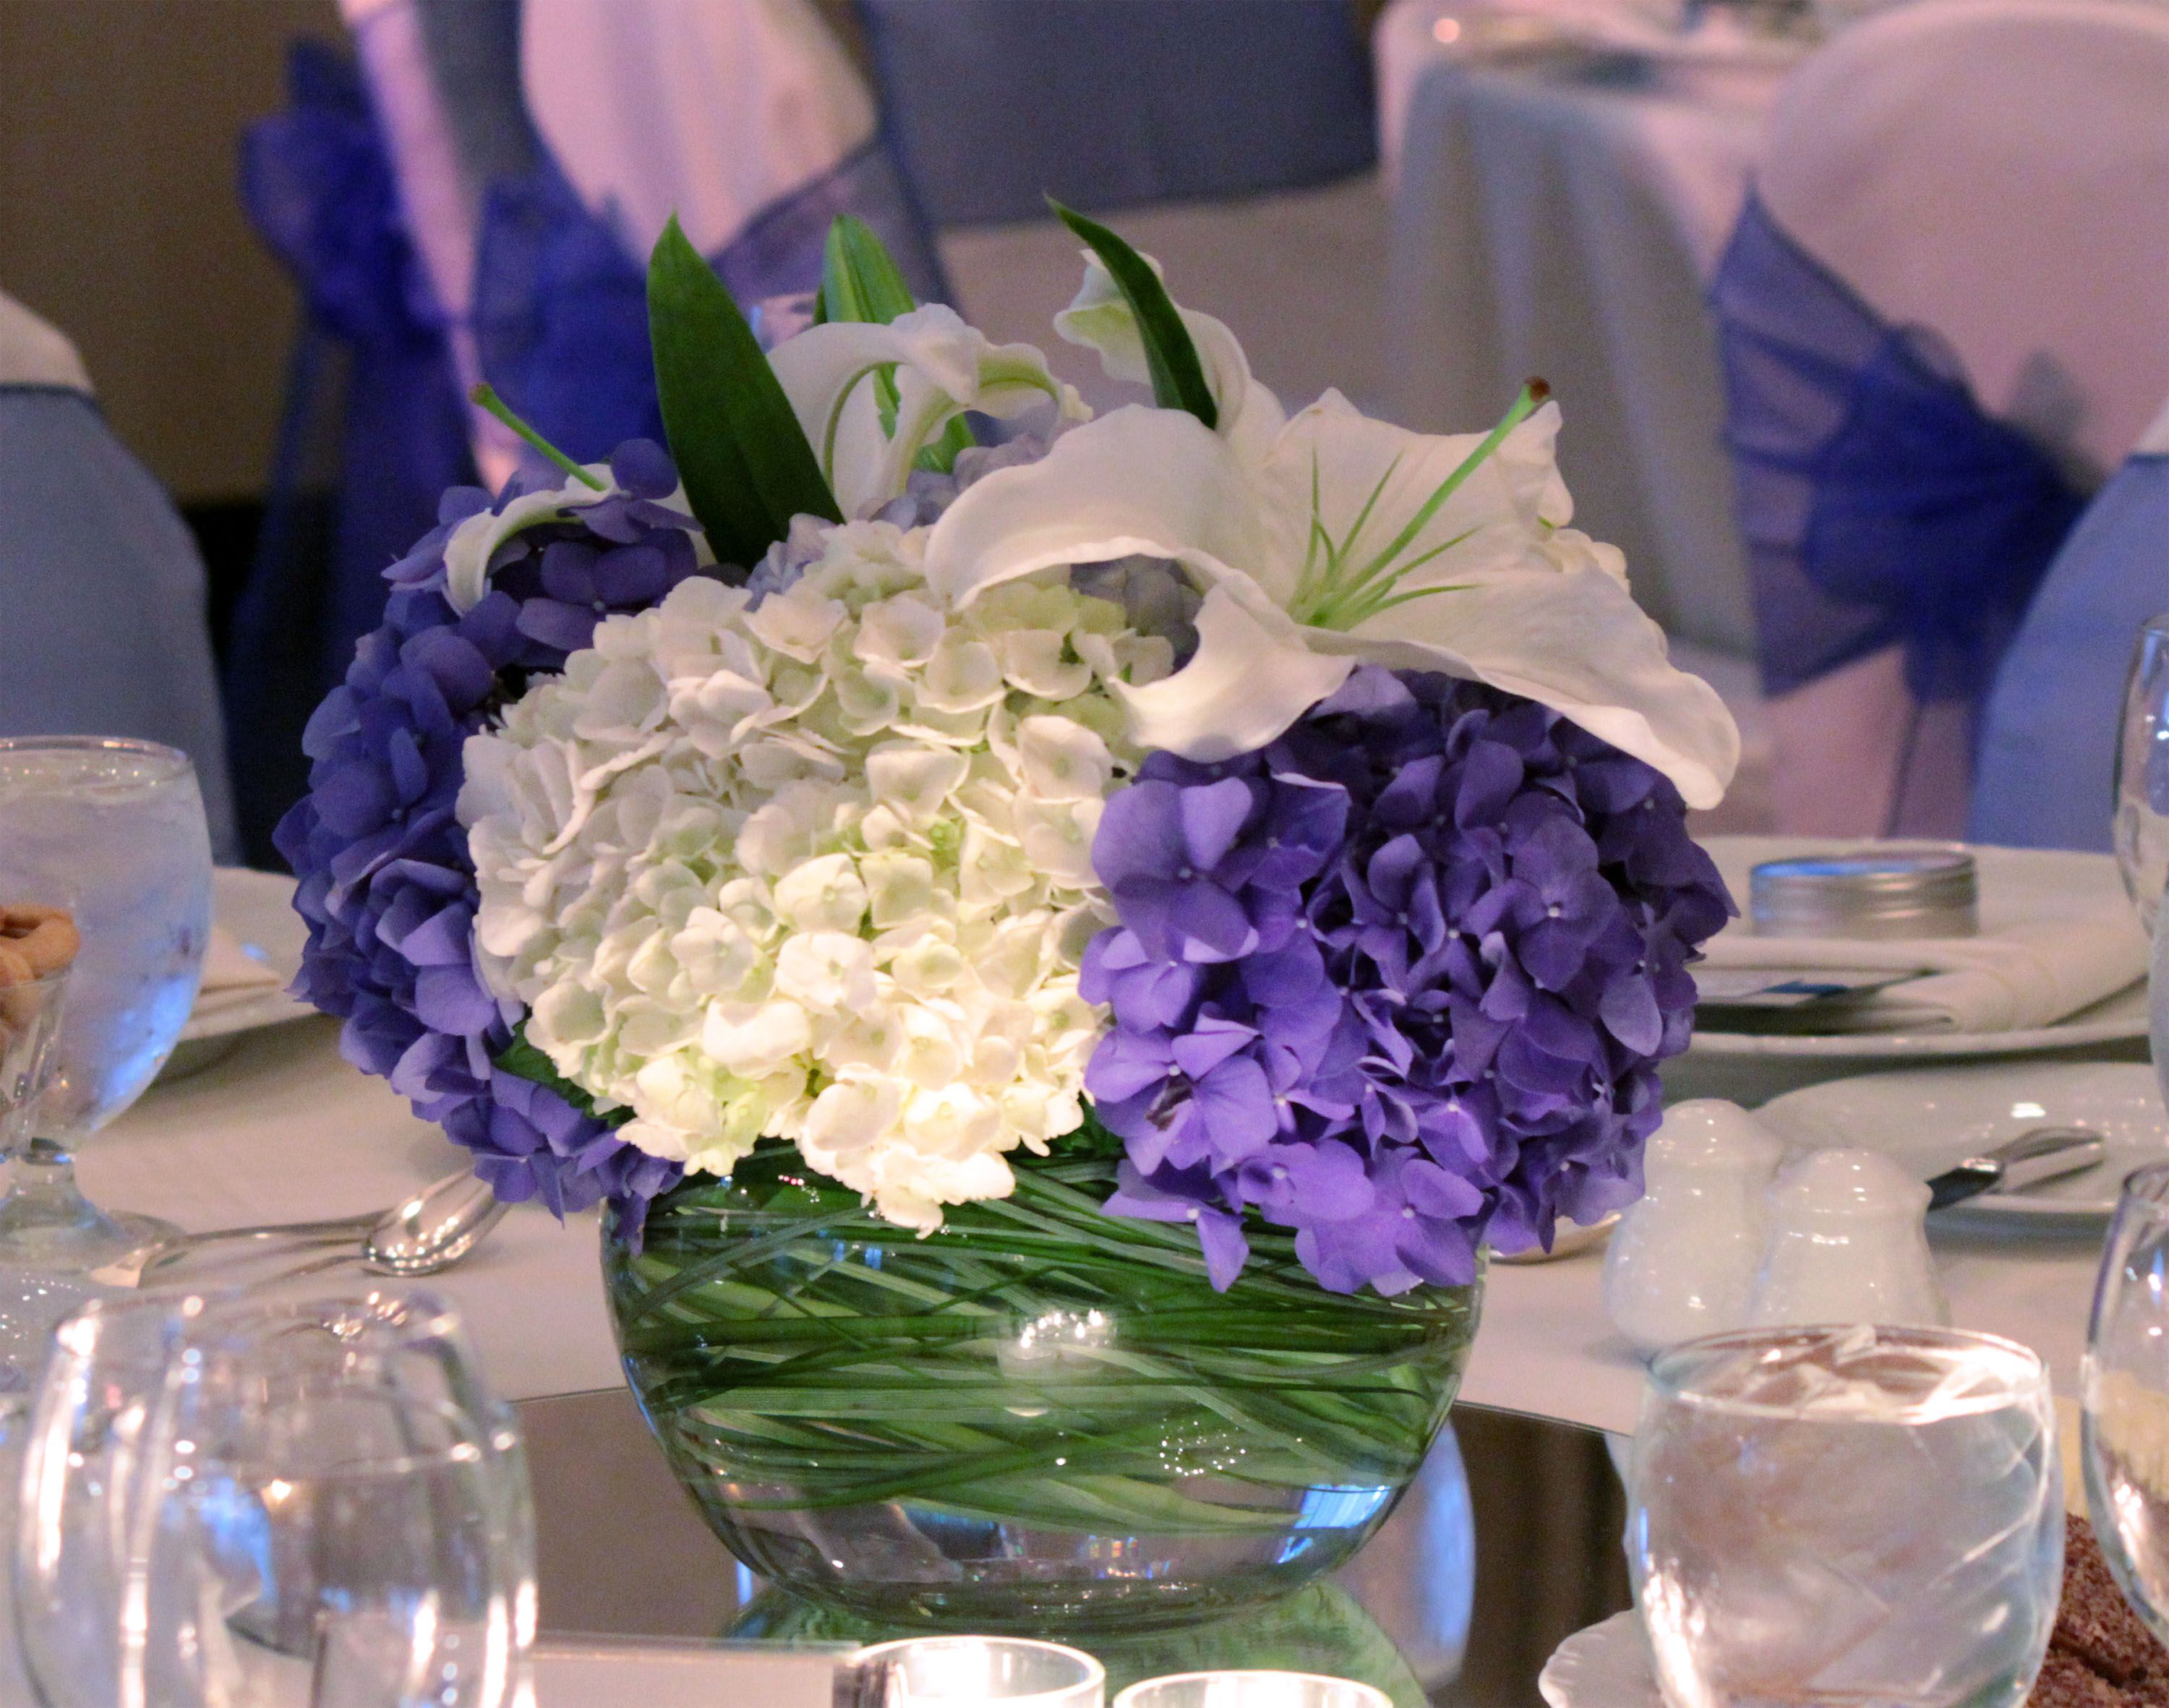 Light blue wedding decoration ideas  Hydrangea Centerpiece Ideas for Weddings  Deep Blue Wedding